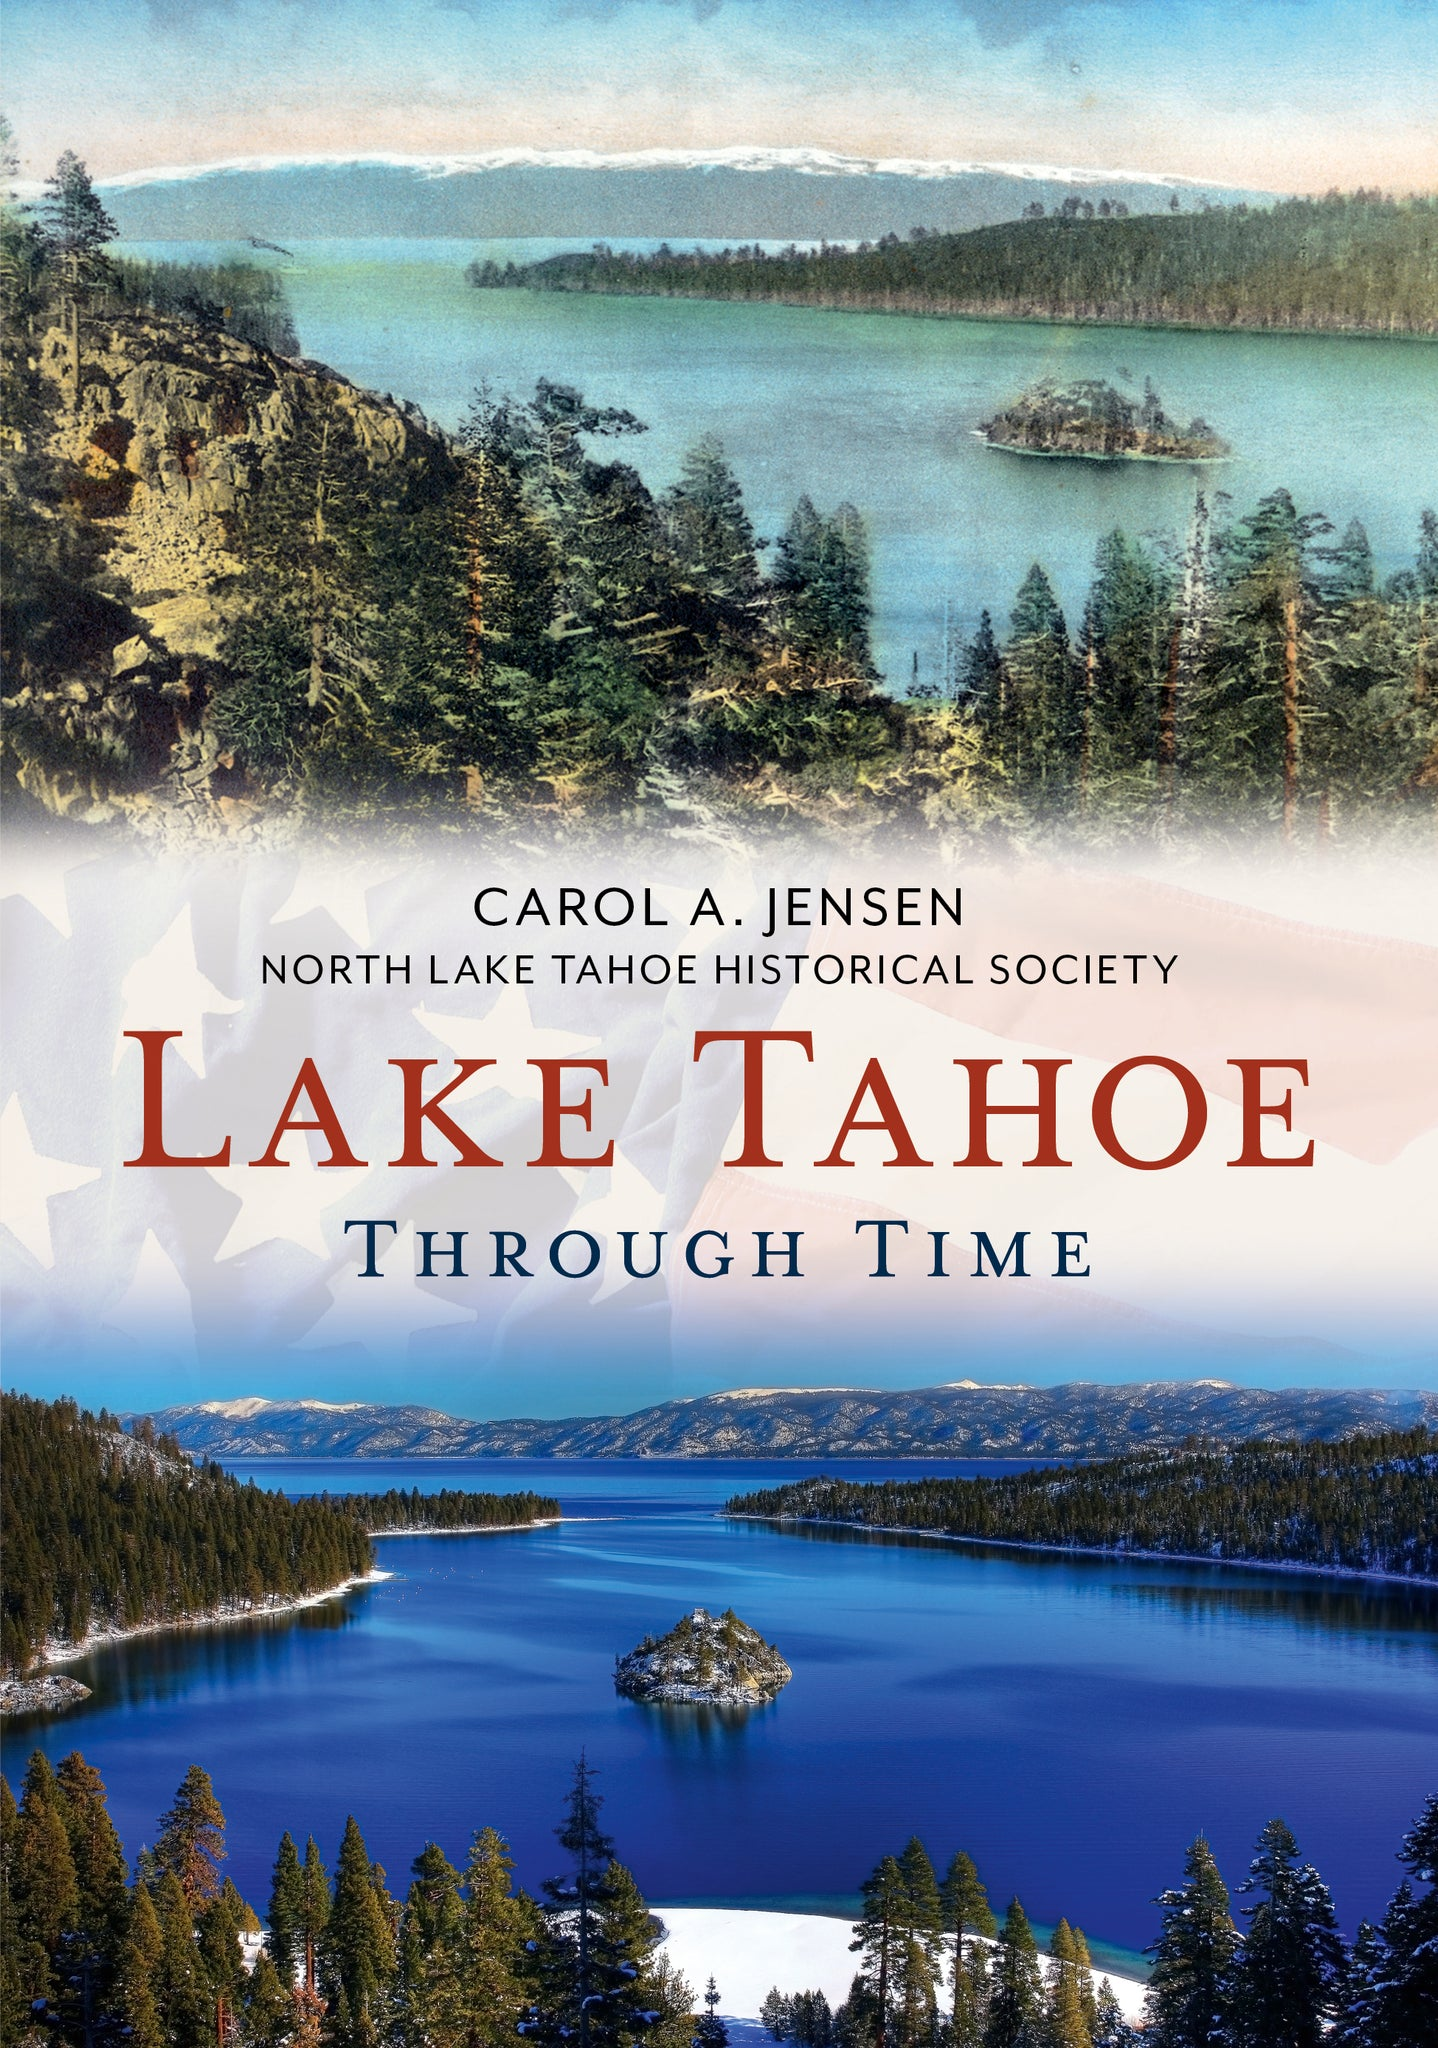 Lake Tahoe Through Time